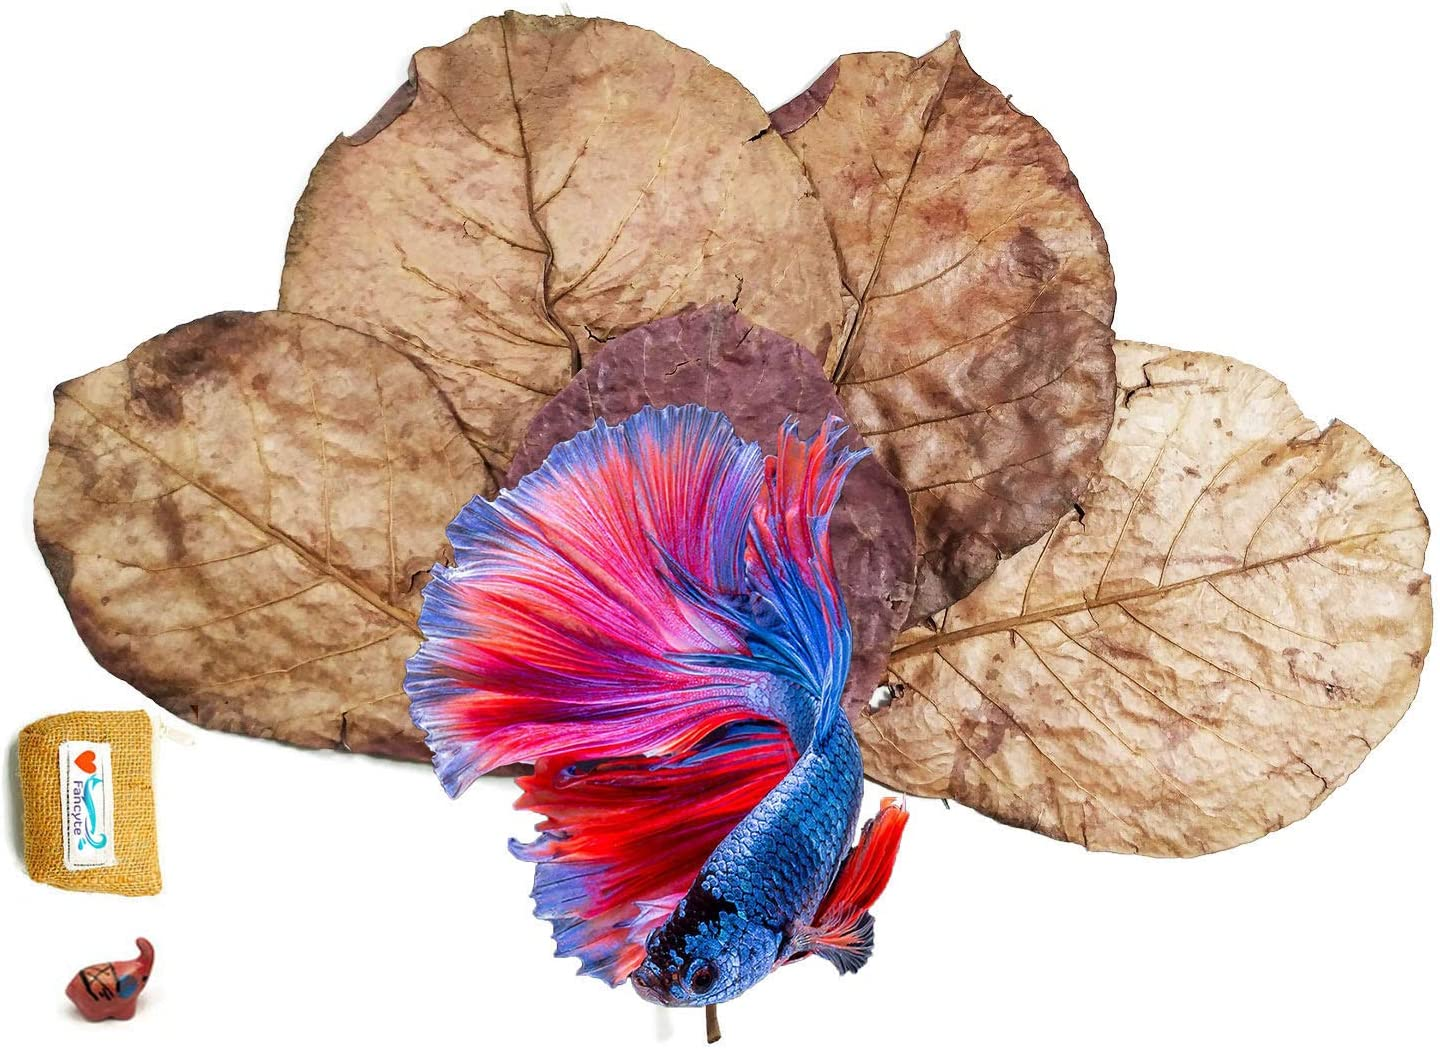 FANCYTE 18-25CM 50 NEW before selling Grams 25PIECES Tan Fish Almond Leaves Elegant Indian